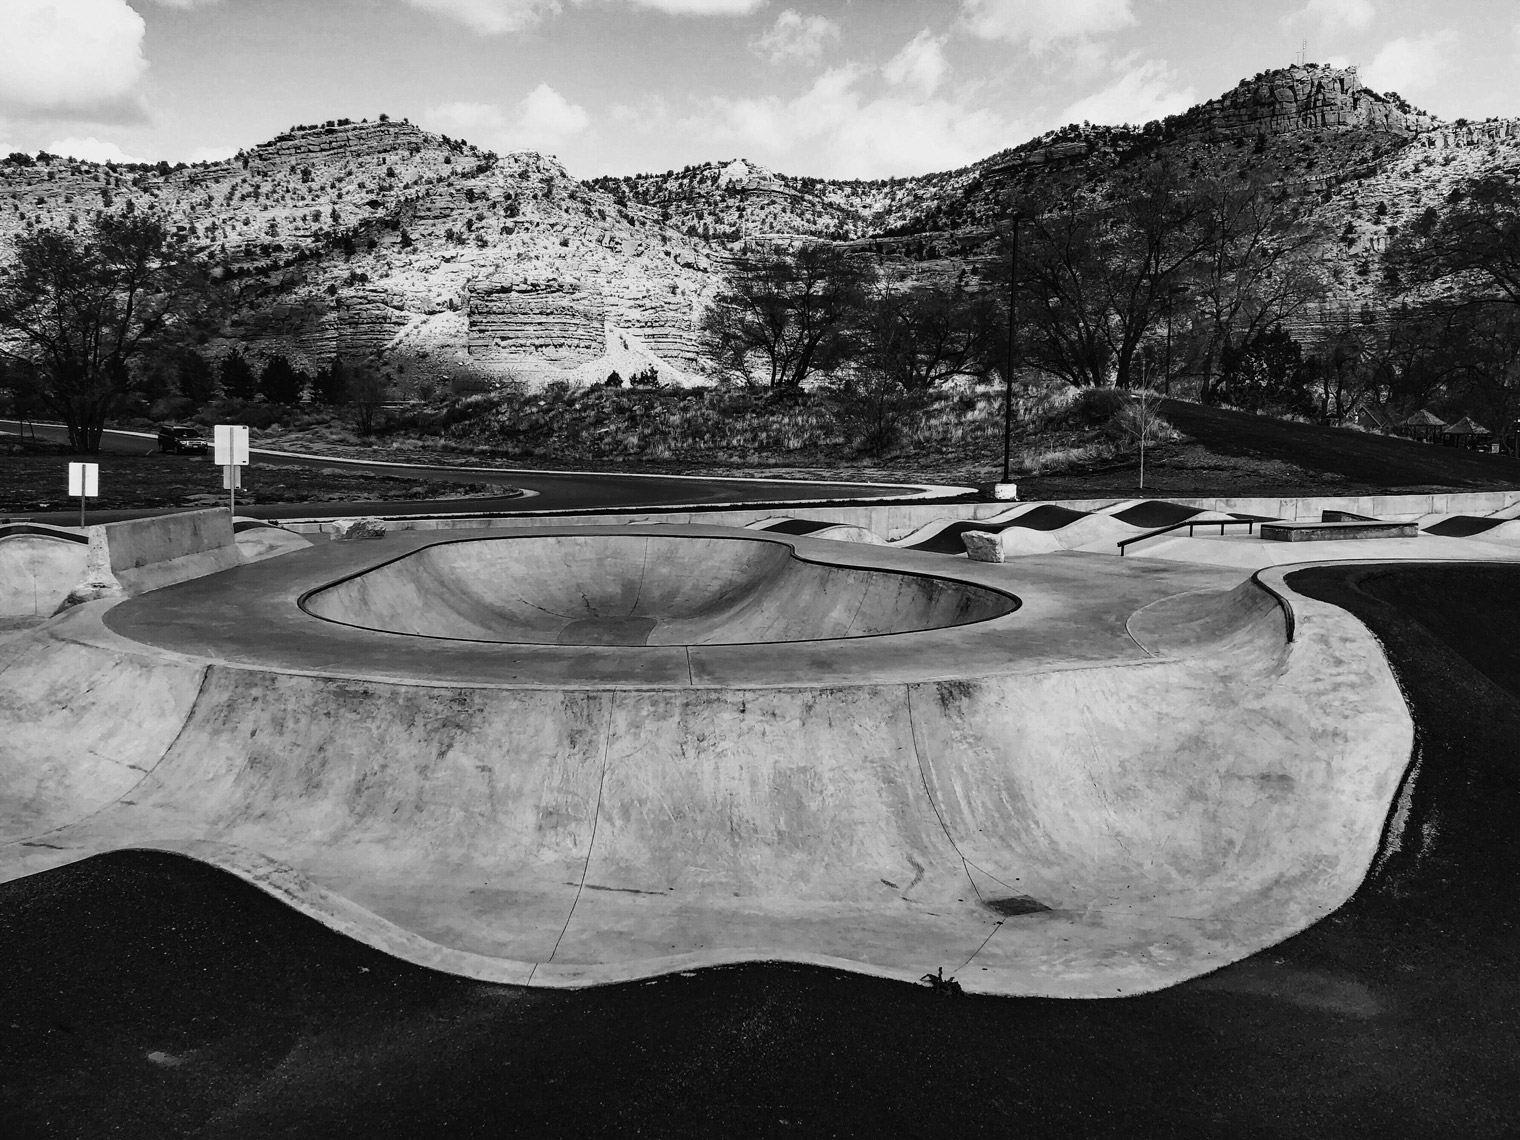 RoadTripping_SkateparkProject_Park01_Town_Retouched_Web